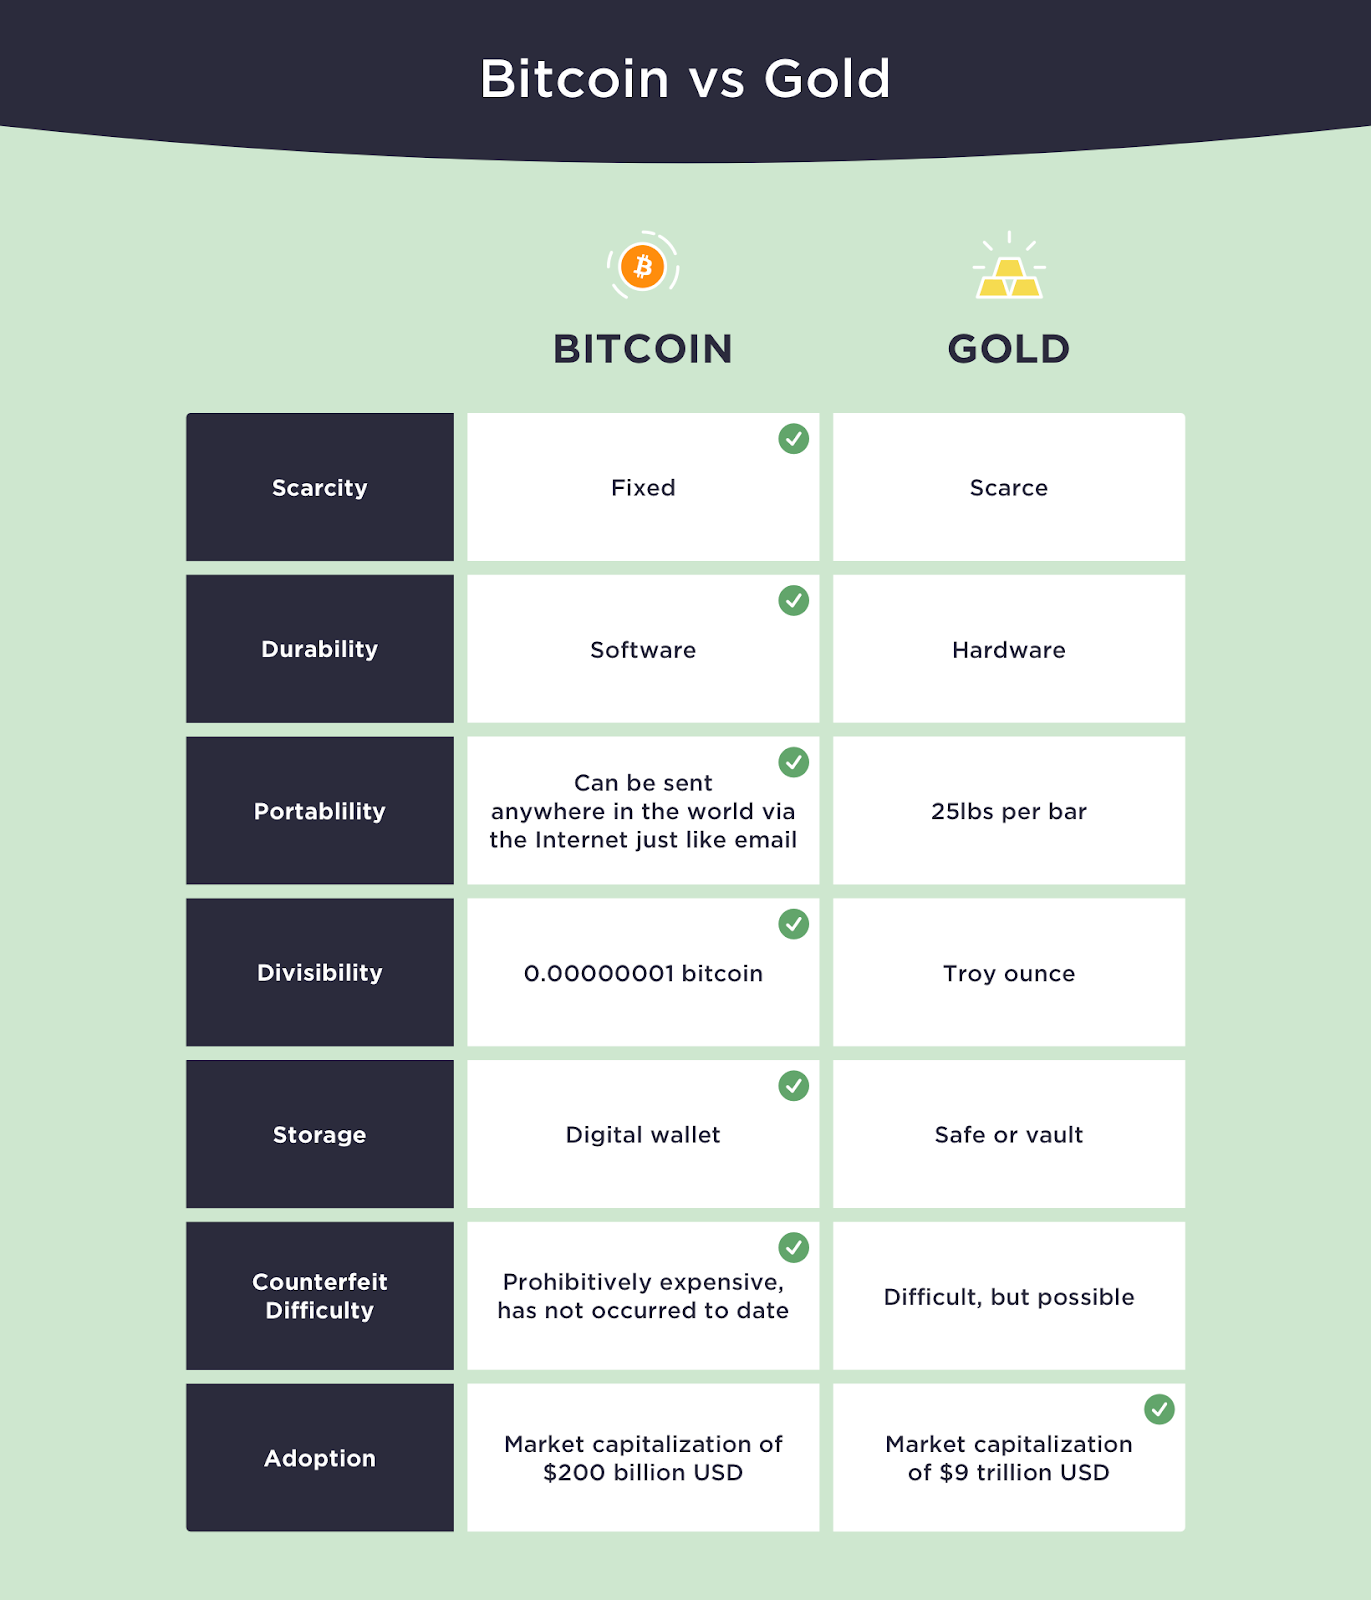 The advantages of Bitcoin over gold